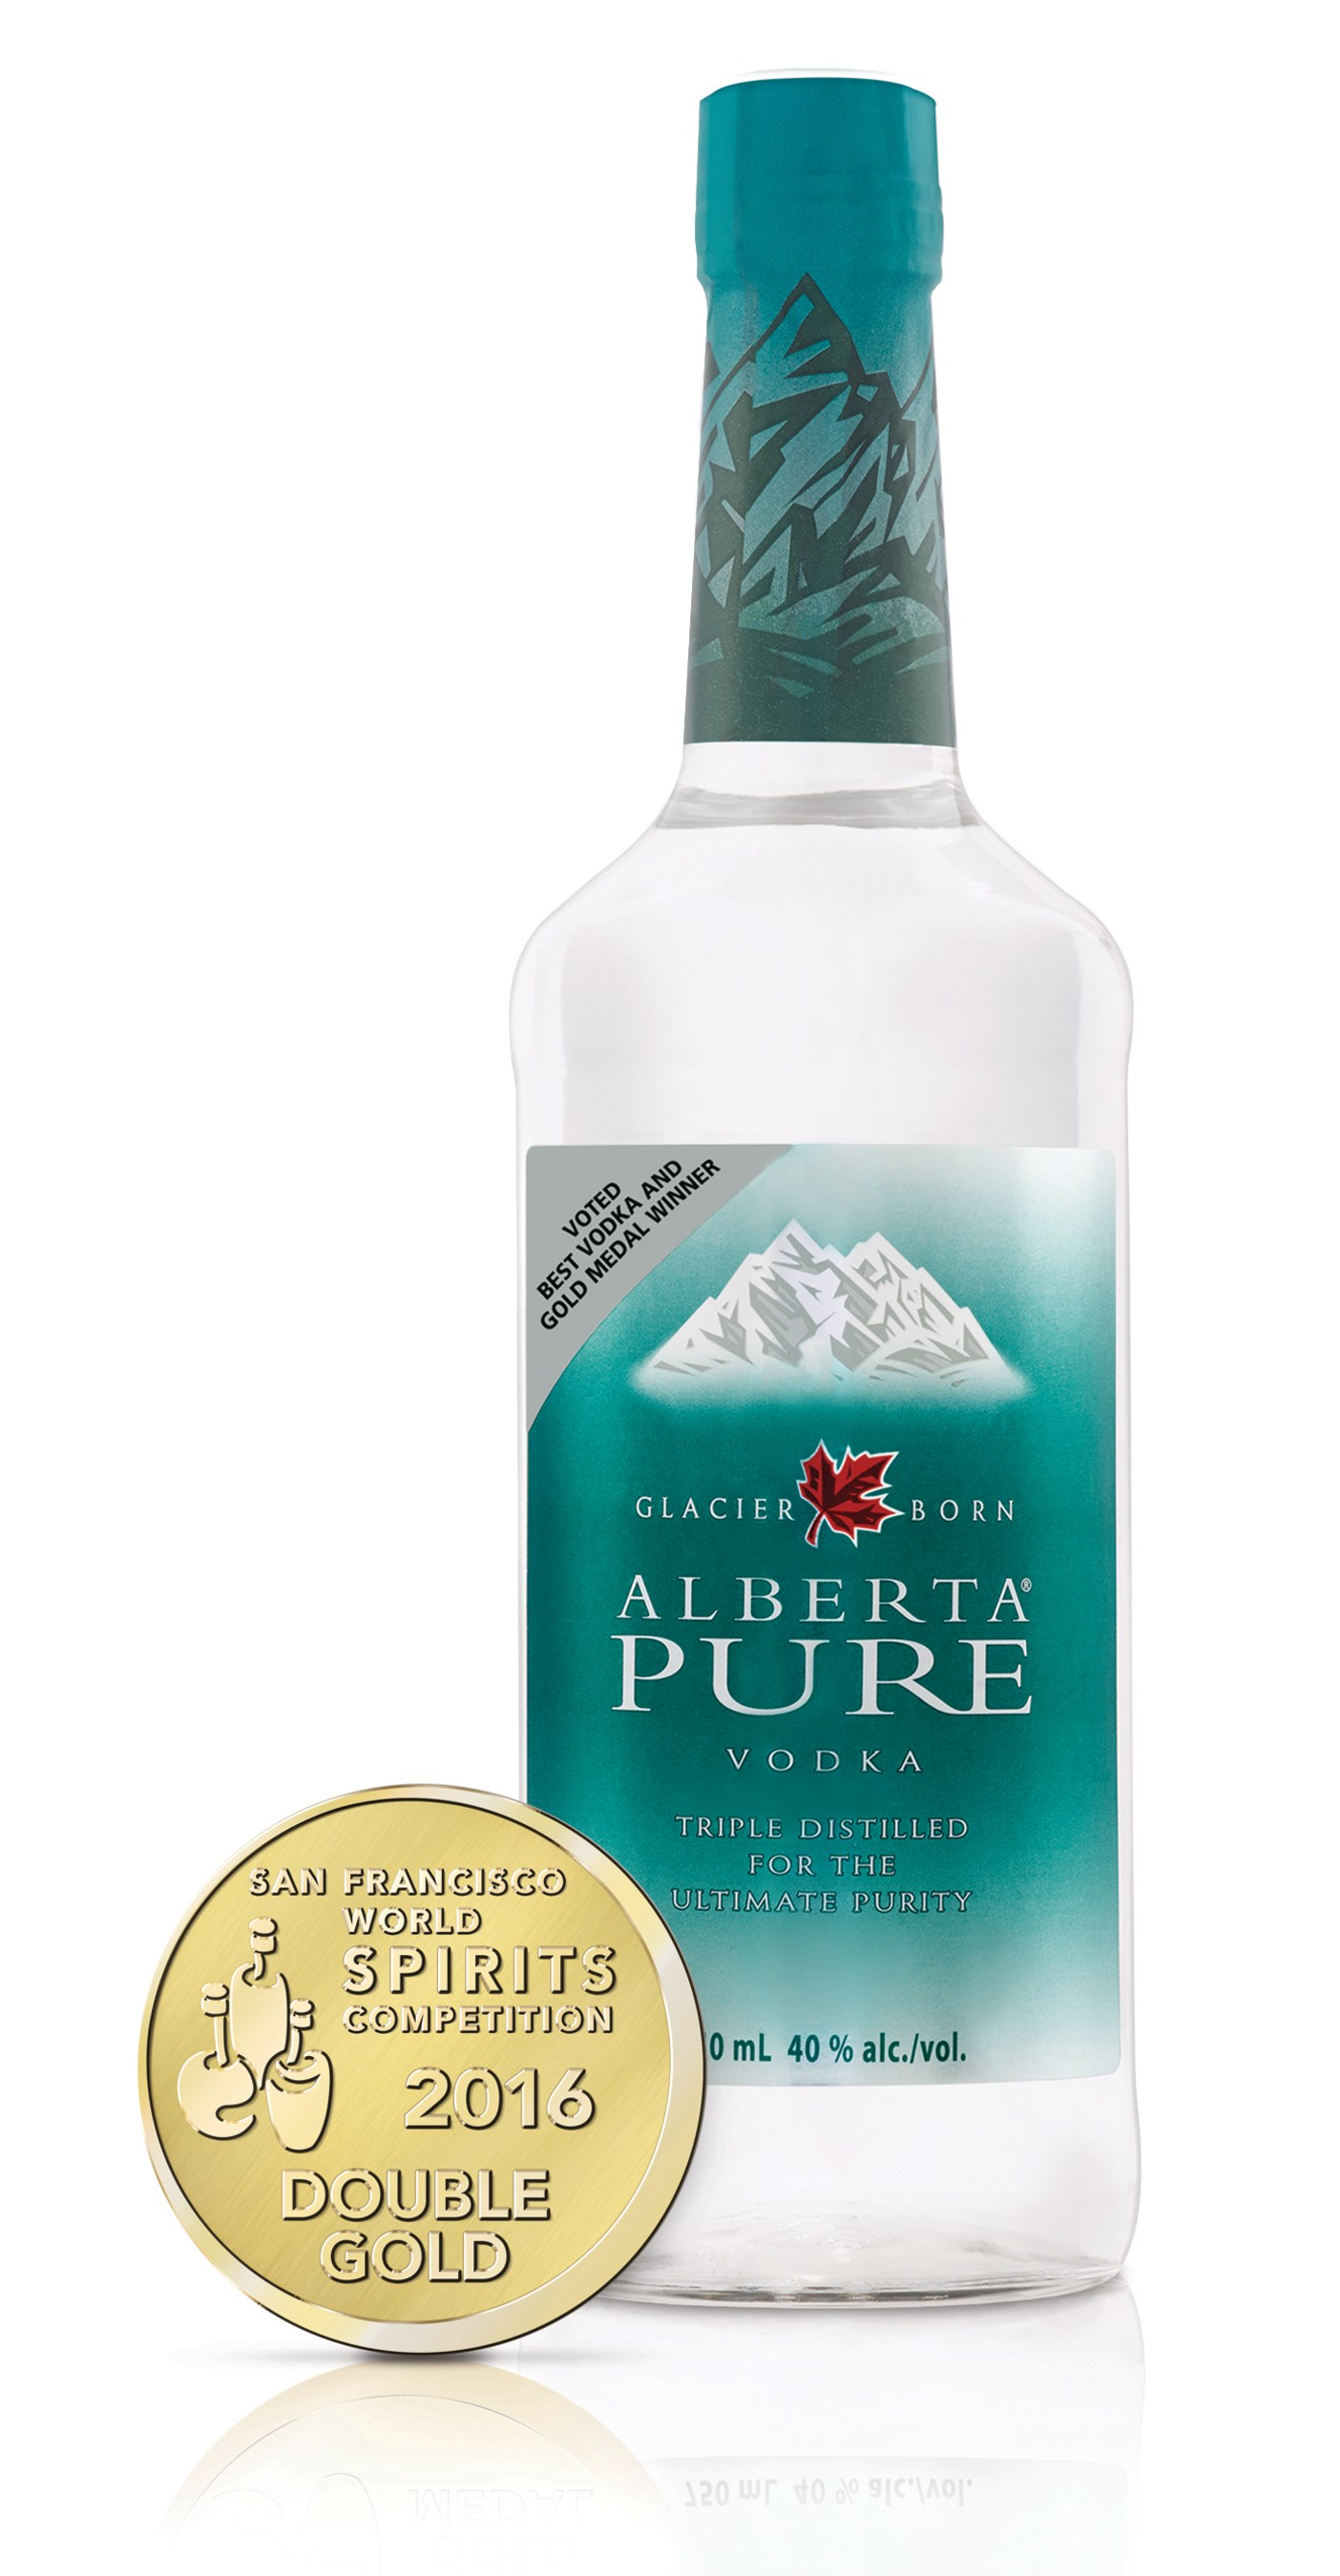 Alberta Distillers Ltd - Alberta Pure Vodka wins Double Gold at 2016 San Francisco World Spirits Competition